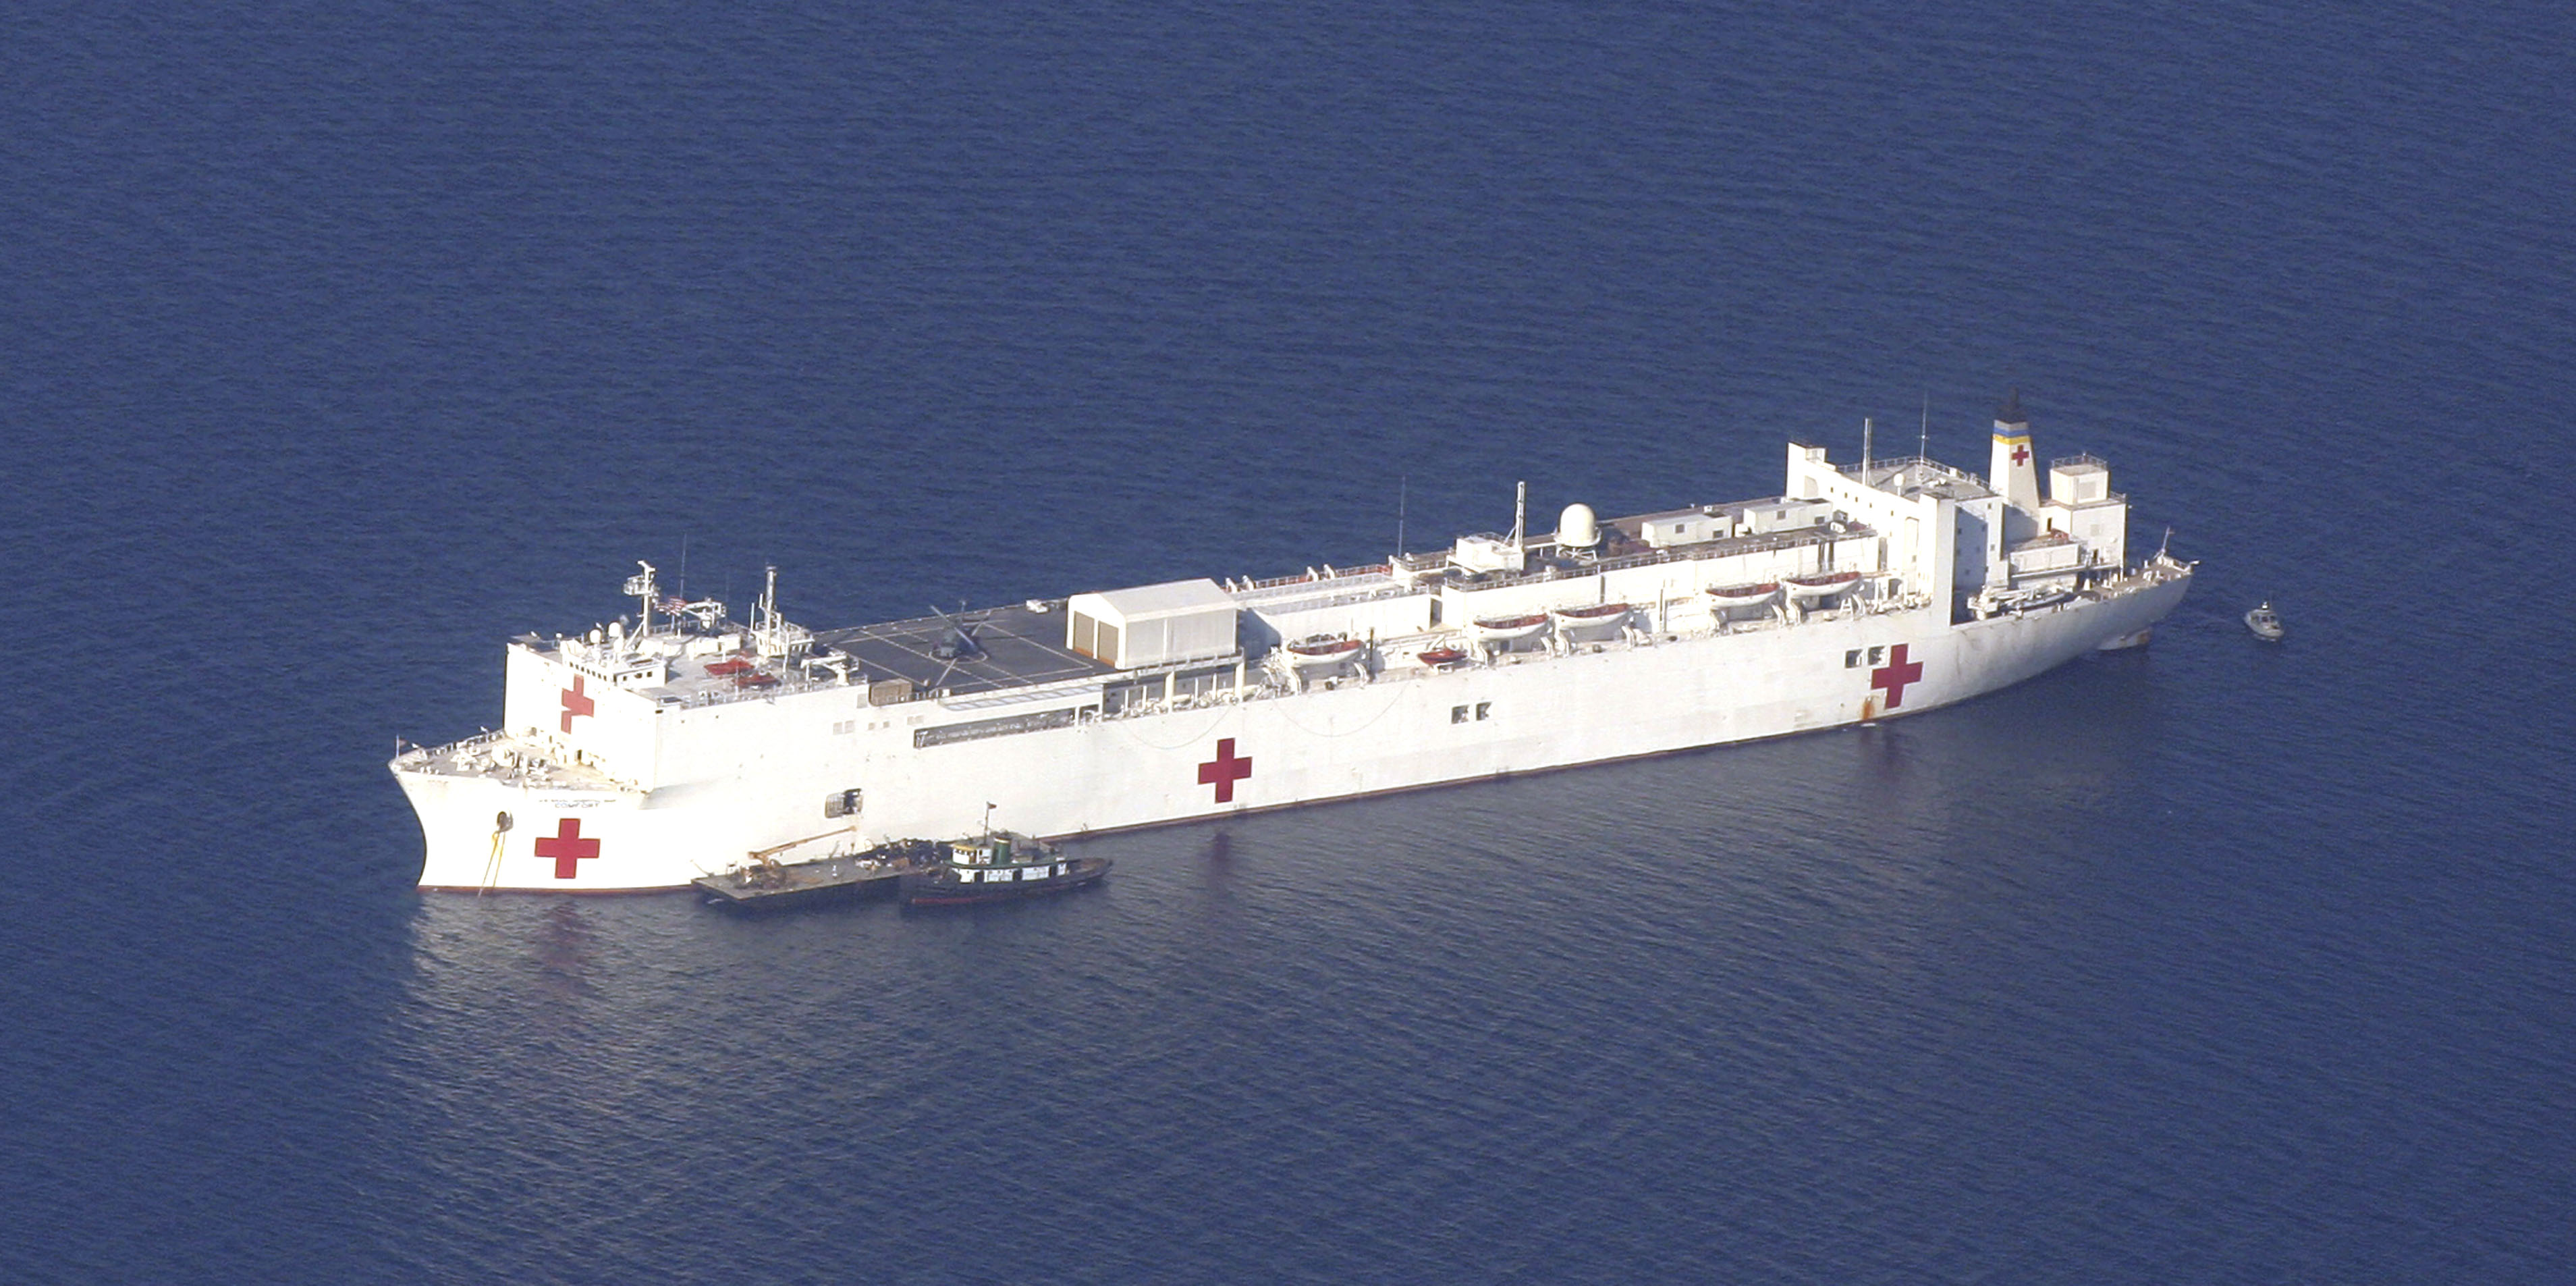 The Navy's hospital ship USNS Comfort, is anchored in the Bay of Haiti, off Port-Au-Prince on Wednesday. The USNS Comfort is providing humanitarian as...